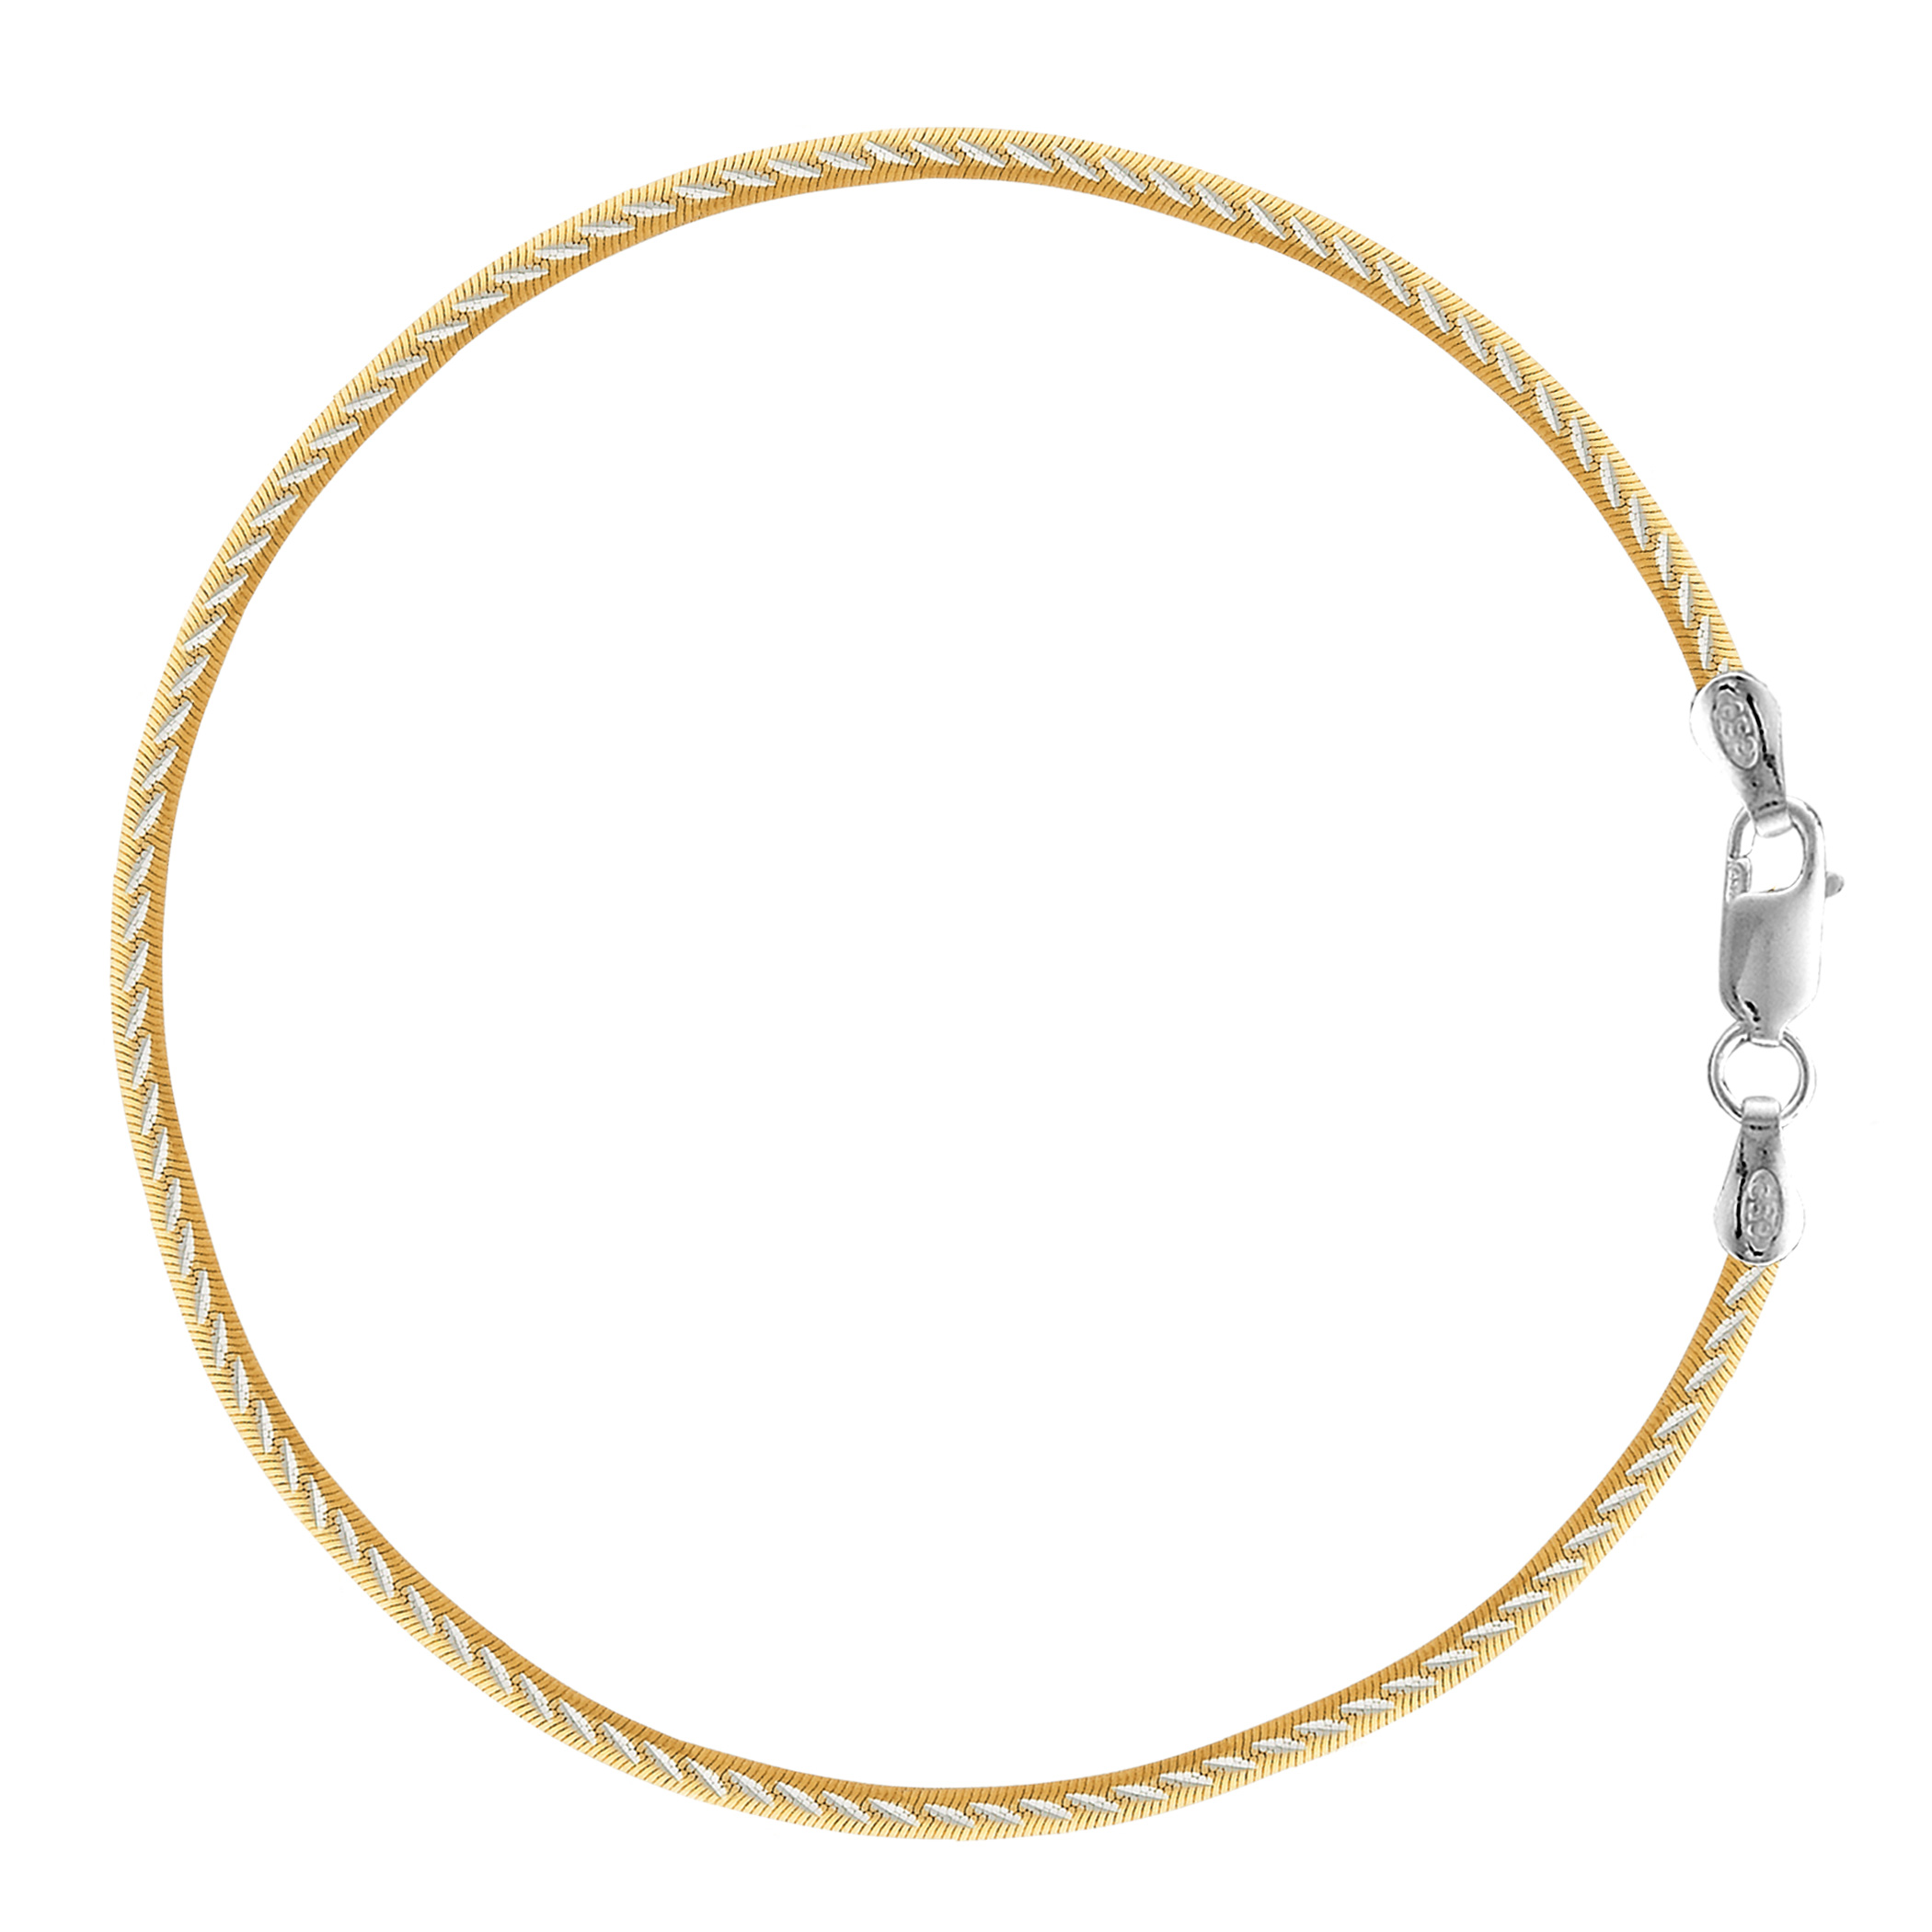 White And Yellow Diamond Cut Snake Chain Anklet In Sterling Silver, 10″